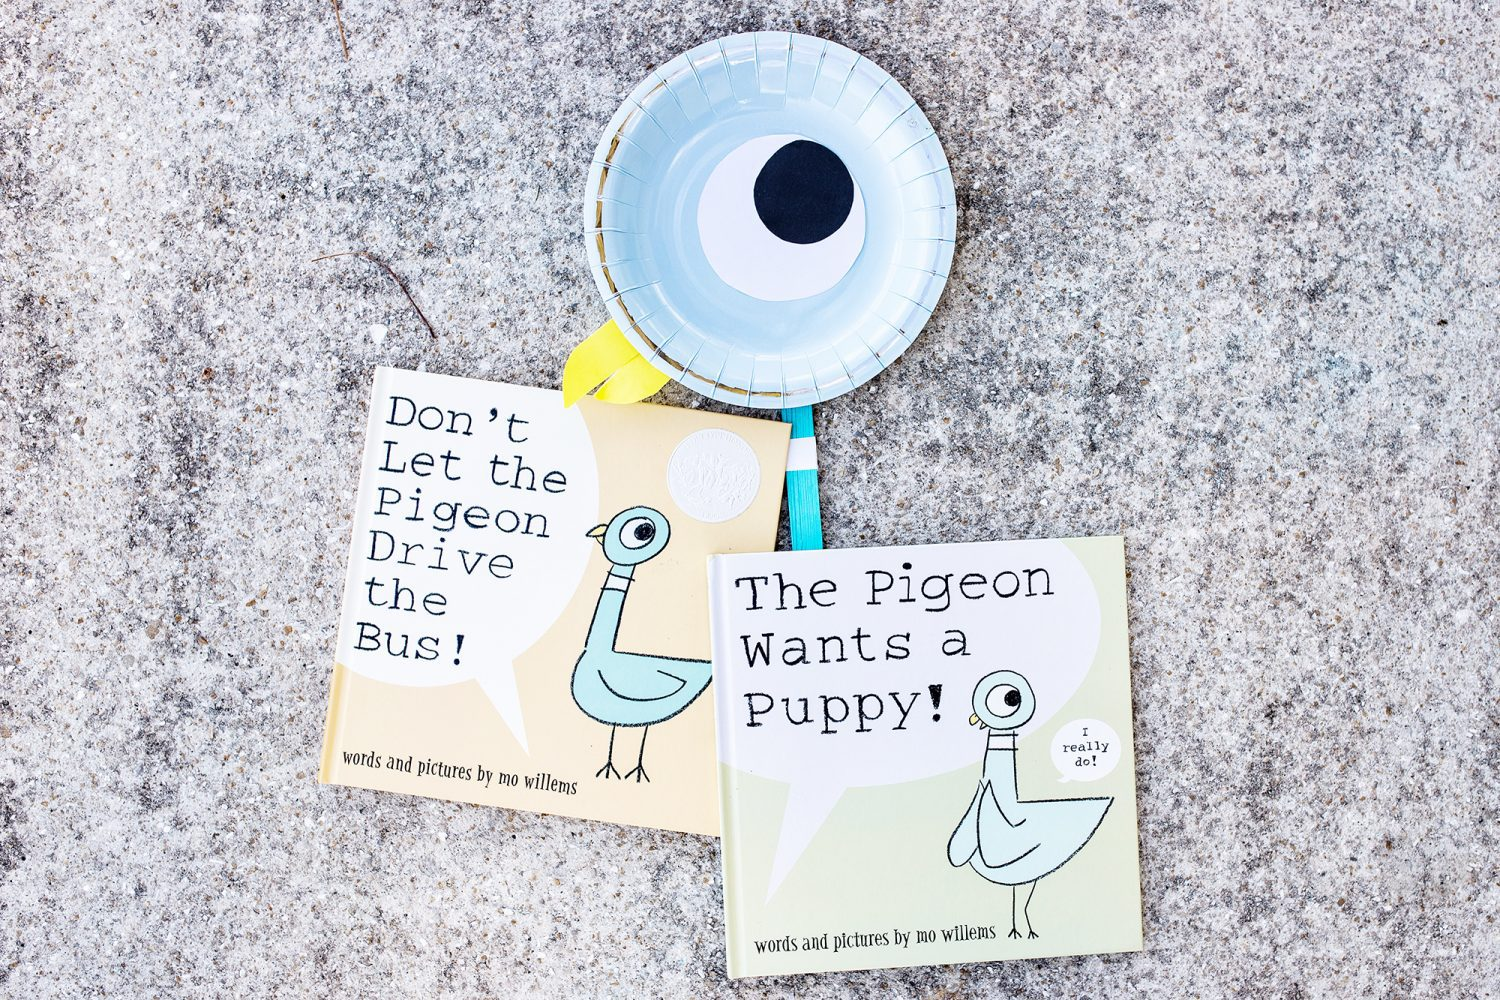 kids craft, kids diy, children's craft, children's diy, pigeon mask, how to, how to make a pigeon mask, mo willems pigeon, don't let the pigeon drive the bus, the pigeon wants a puppy, mo willems, pigeon, mo willems book, disney books, disney, kids books, childrens books, best new children's book, willems, best children's author, best kids author, book release